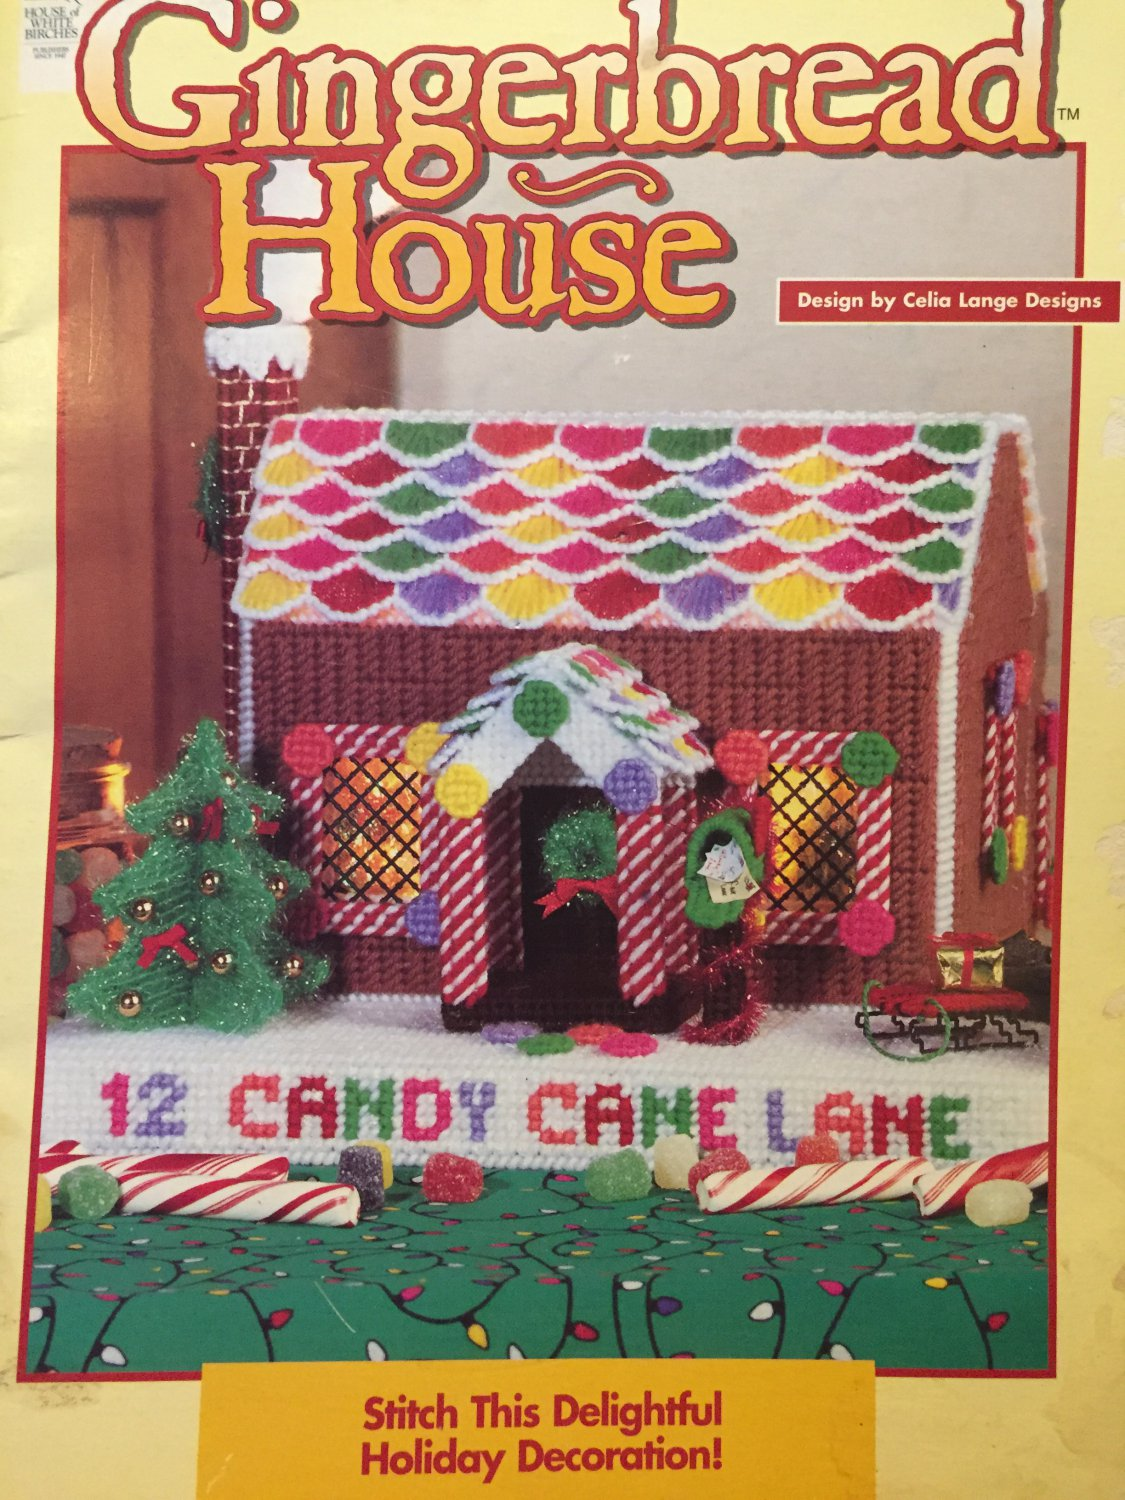 Gingerbread House Centerpiece Plastic Canvas Pattern House of White Birches 181012